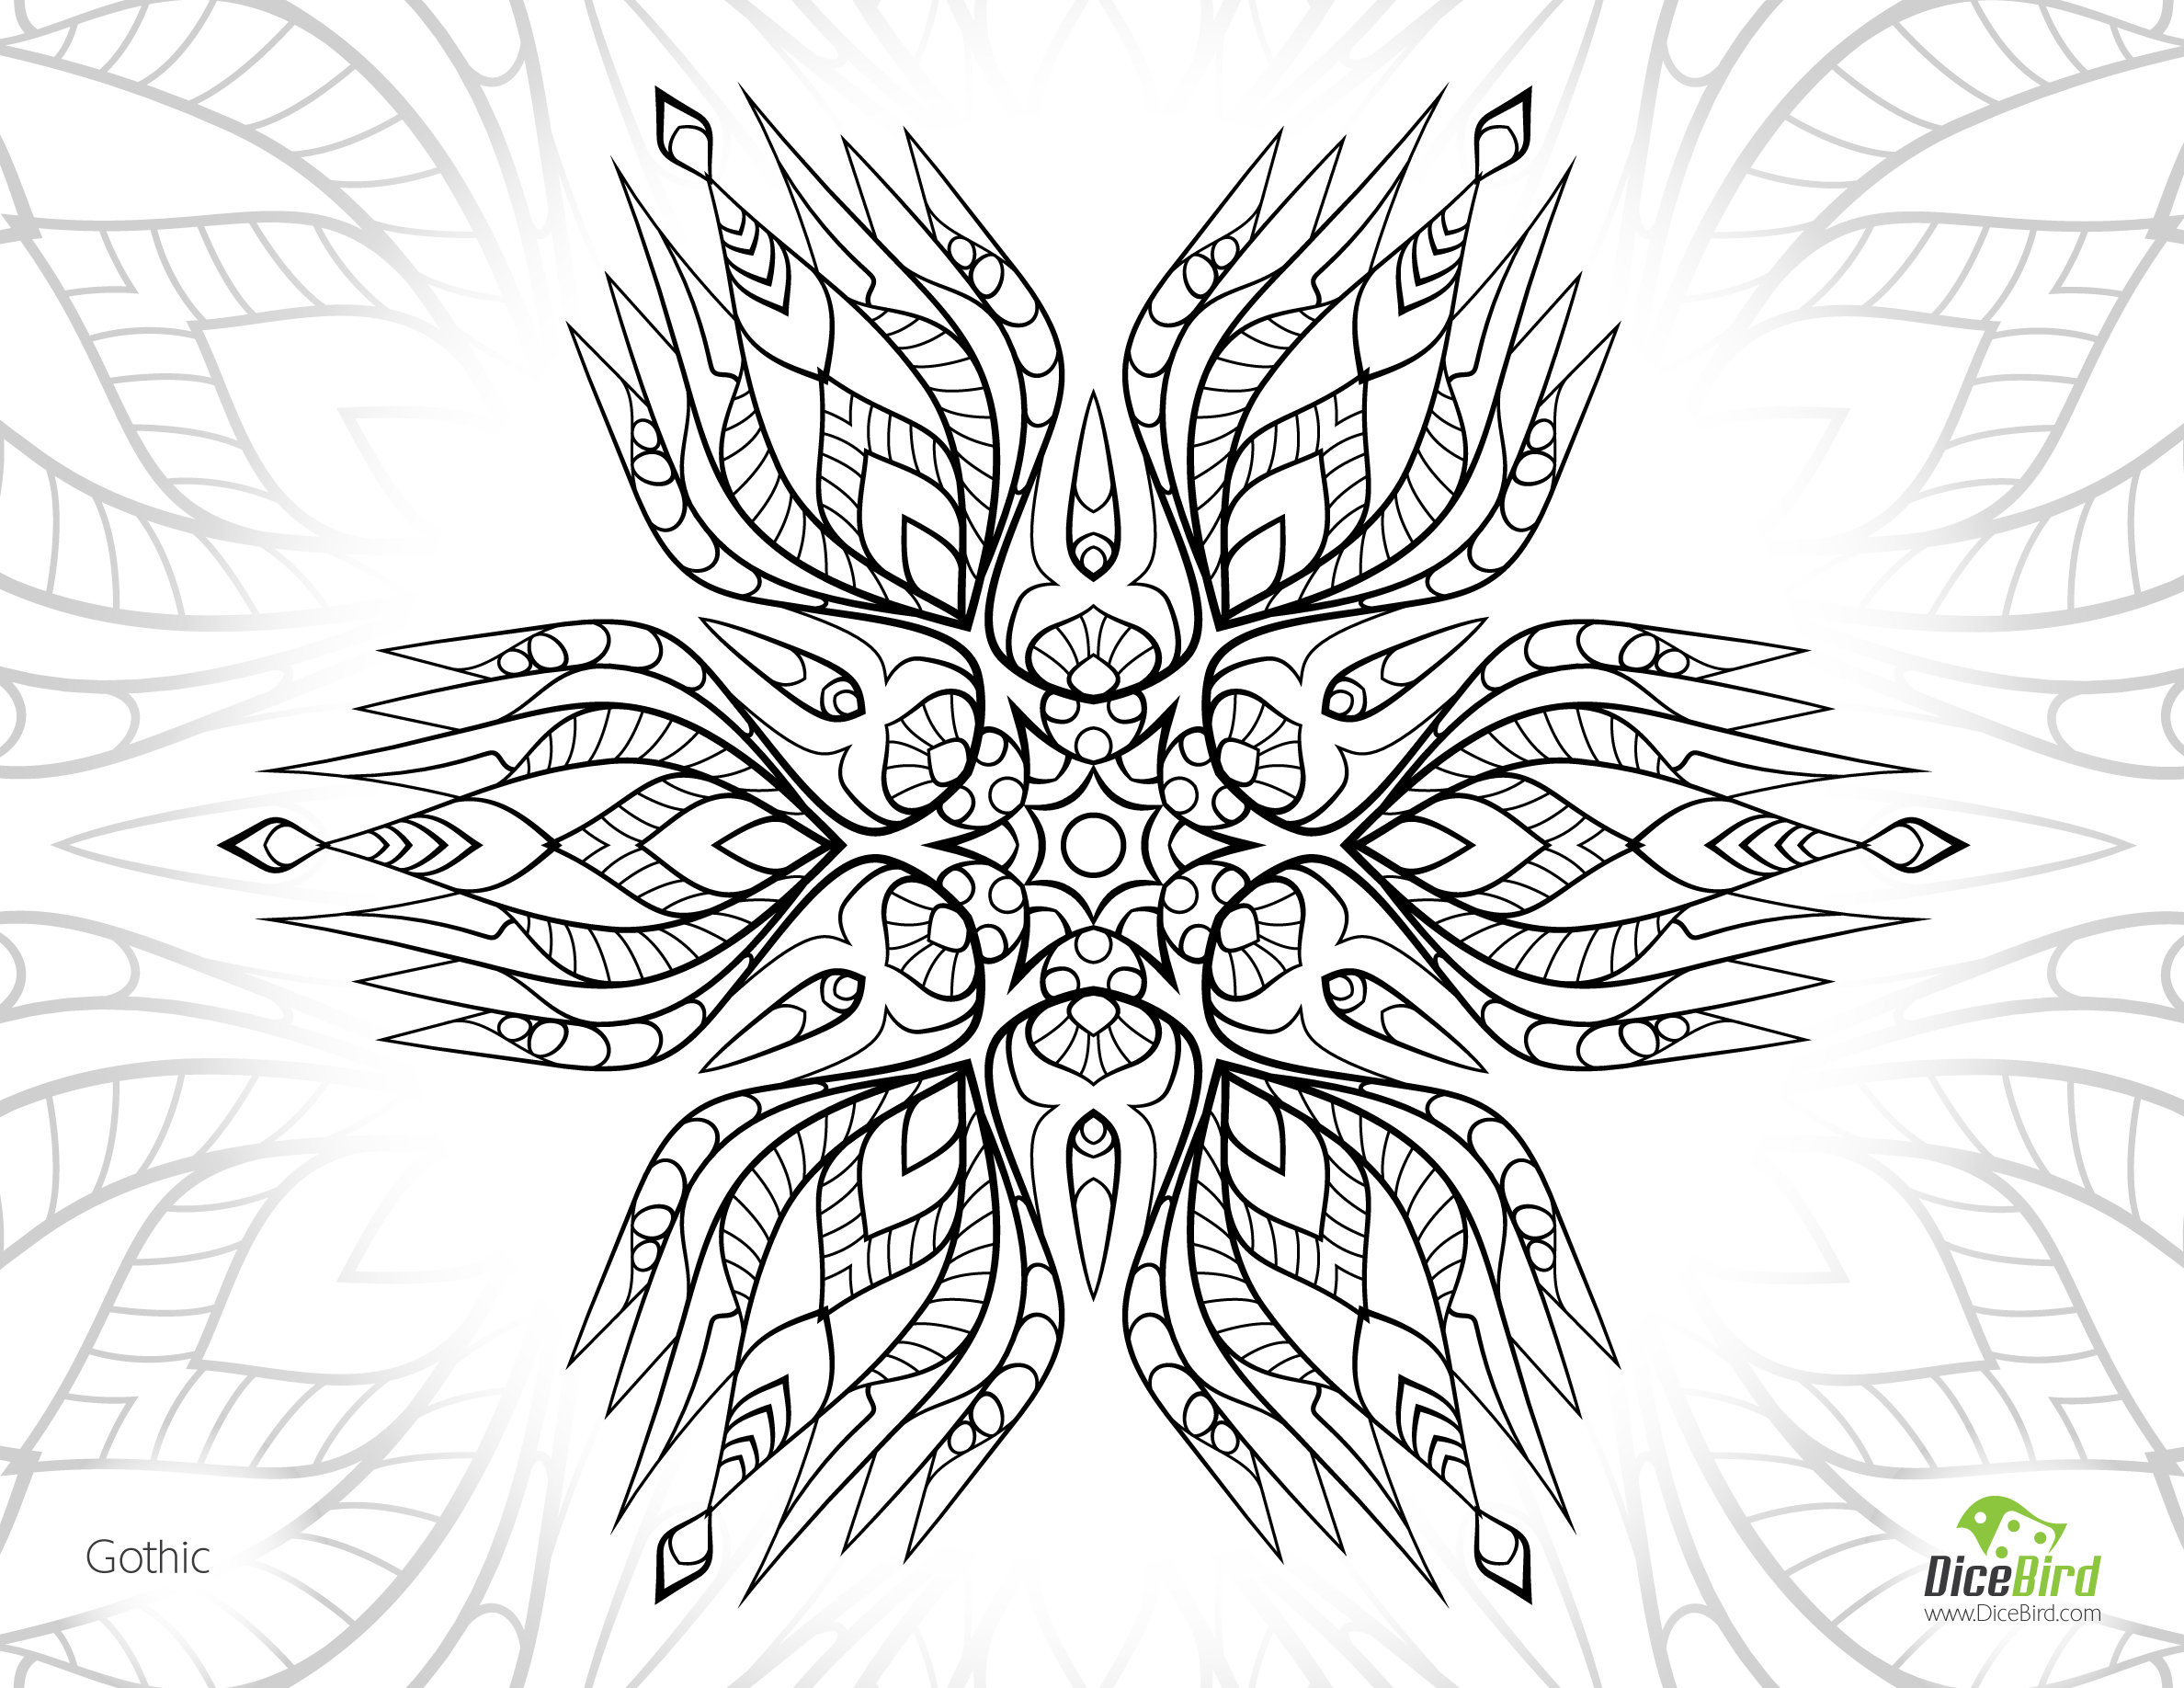 Gothic Adult Coloring Page | Adult Free Coloring Pages Image ...